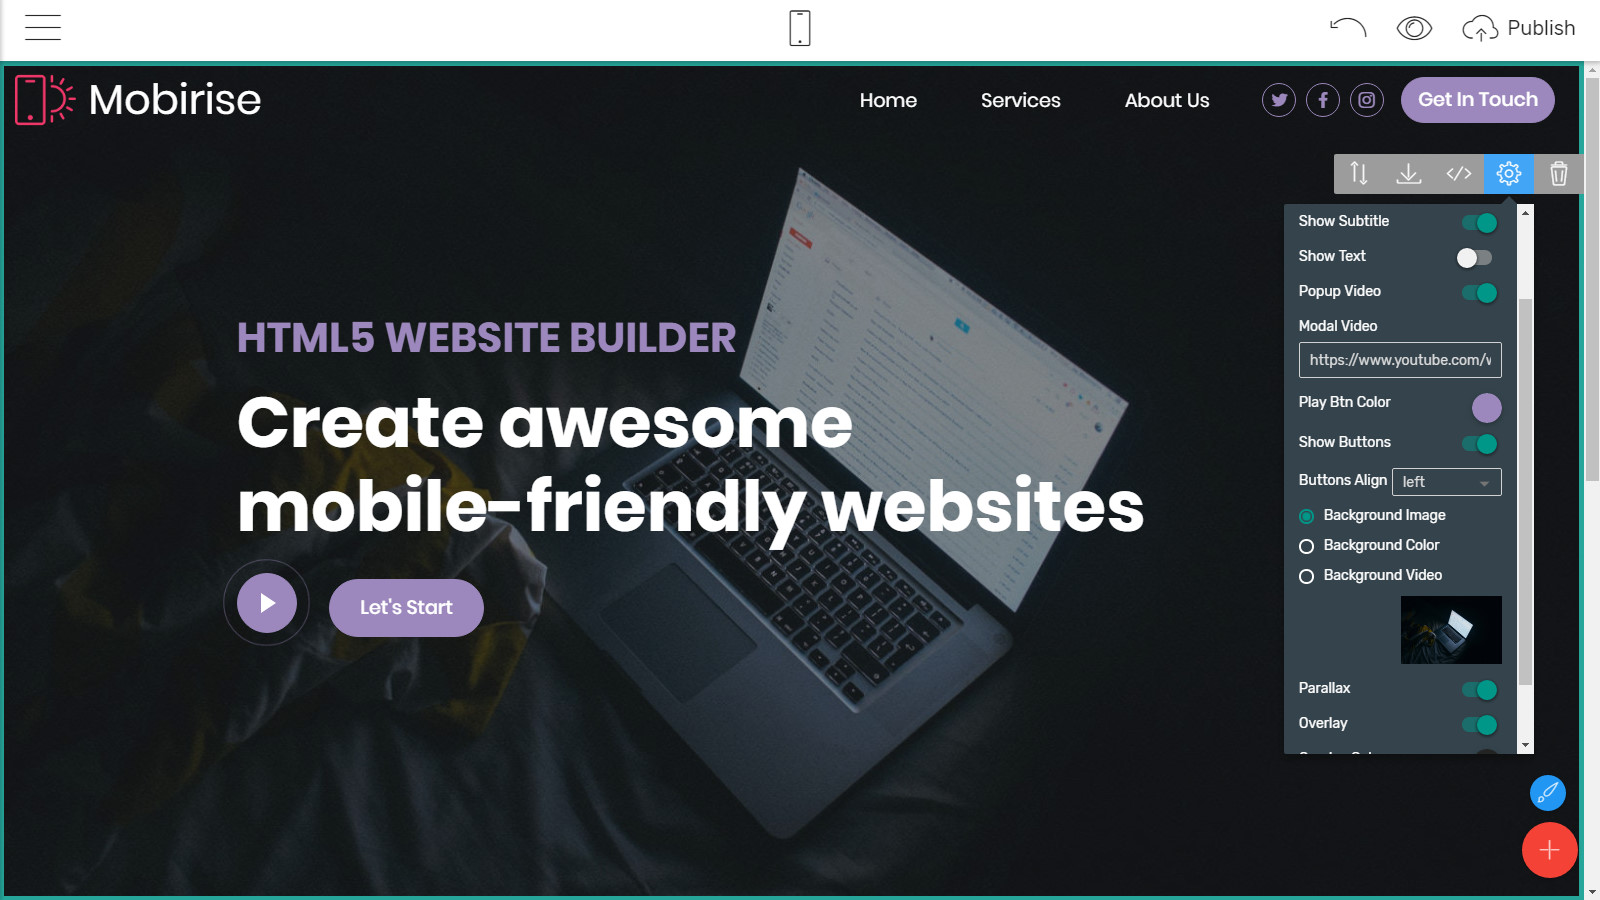 mobile-friendly website layouts